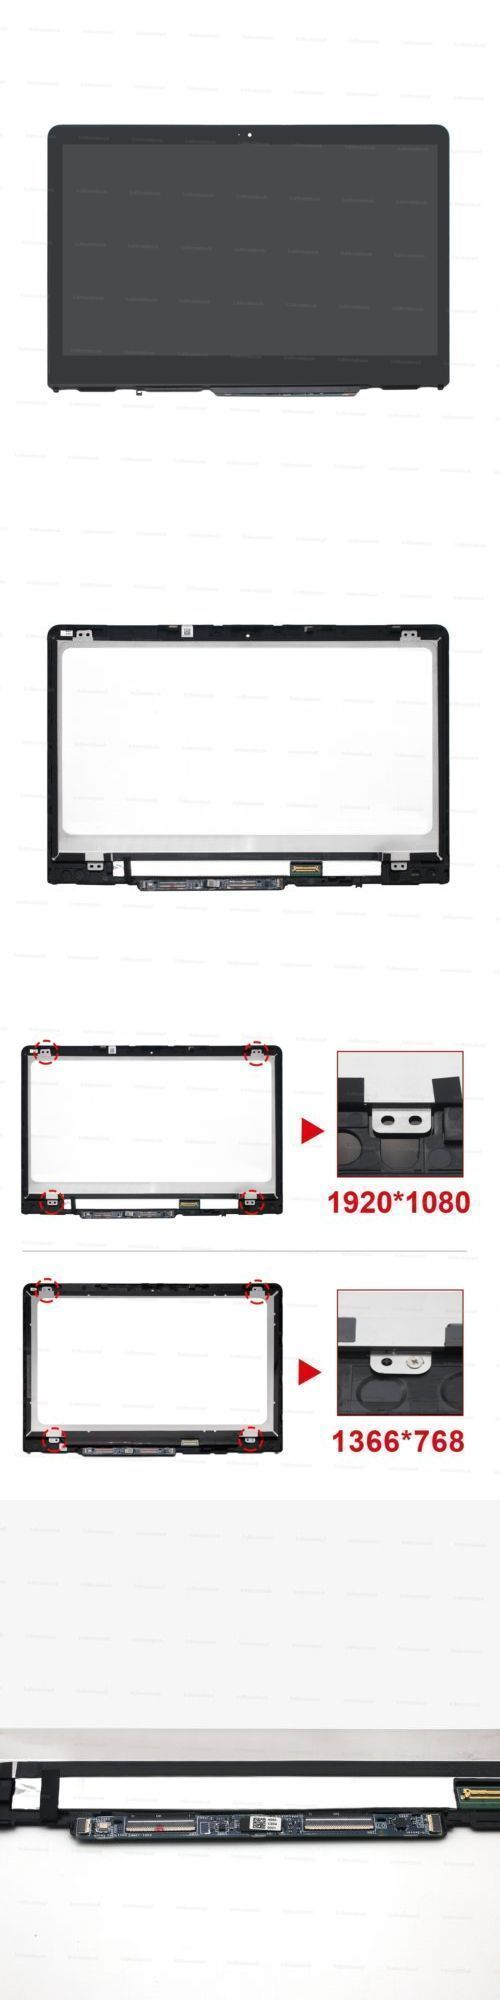 Laptop Screens and LCD Panels 31569: 14 Fhd Lcd Display Touchscreen Assembly+Bezel For Hp Pavilion X360 14M-Ba011dx -> BUY IT NOW ONLY: $192 on #eBay #laptop #screens #panels #display #touchscreen #pavilion #lcdpanels Laptop Screens and LCD Panels 31569: 14 Fhd Lcd Display Touchscreen Assembly+Bezel For Hp Pavilion X360 14M-Ba011dx -> BUY IT NOW ONLY: $192 on #eBay #laptop #screens #panels #display #touchscreen #pavilion #lcdpanels Laptop Screens and LCD Panels 31569: 14 Fhd Lcd Display Touchscr #lcdpanels